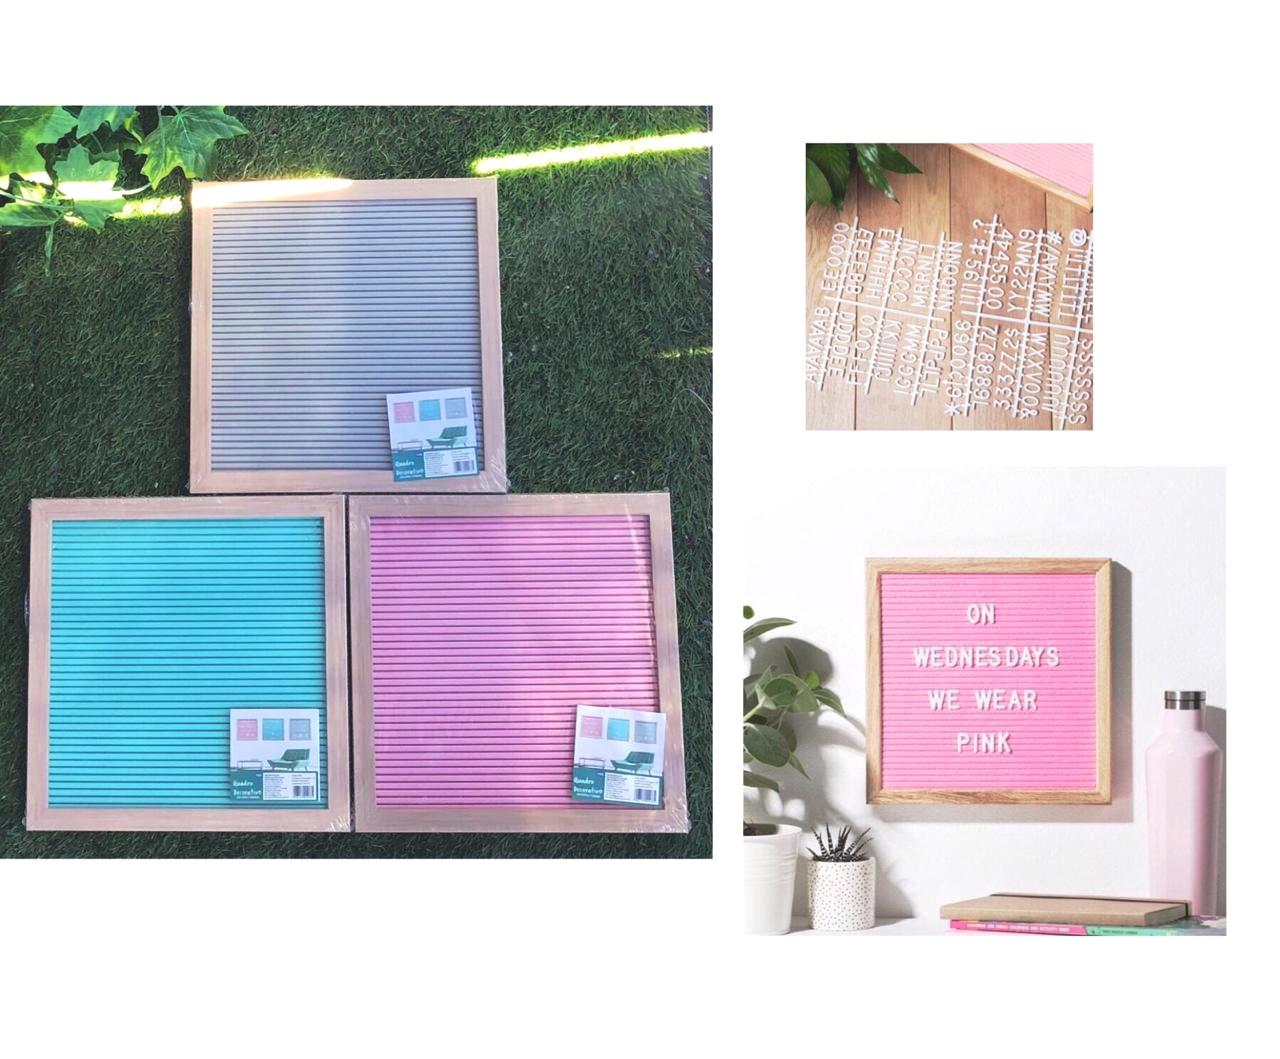 QUADRO DECOR LETTER BOARD. QUADR. 26CM C/ LETRAS P/ MONTAR FRASE COLOR - 95918 - 95576